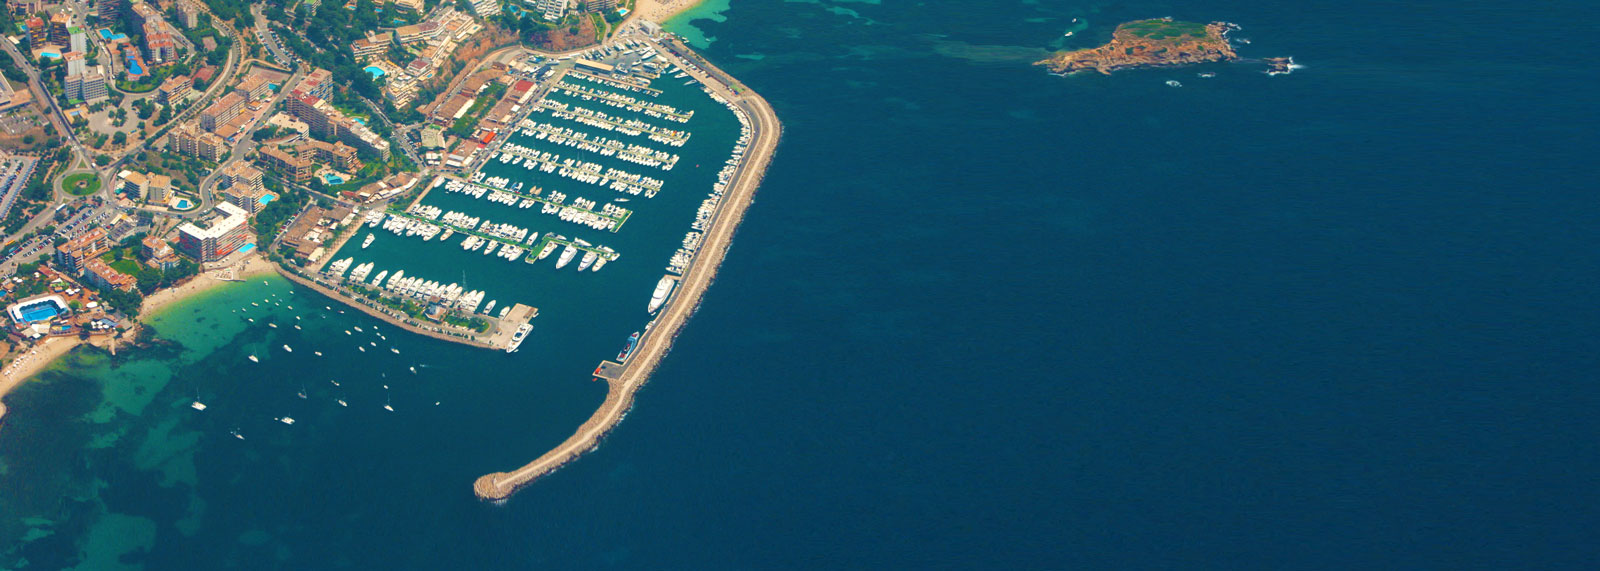 Calvia property market, harbour aerial view.